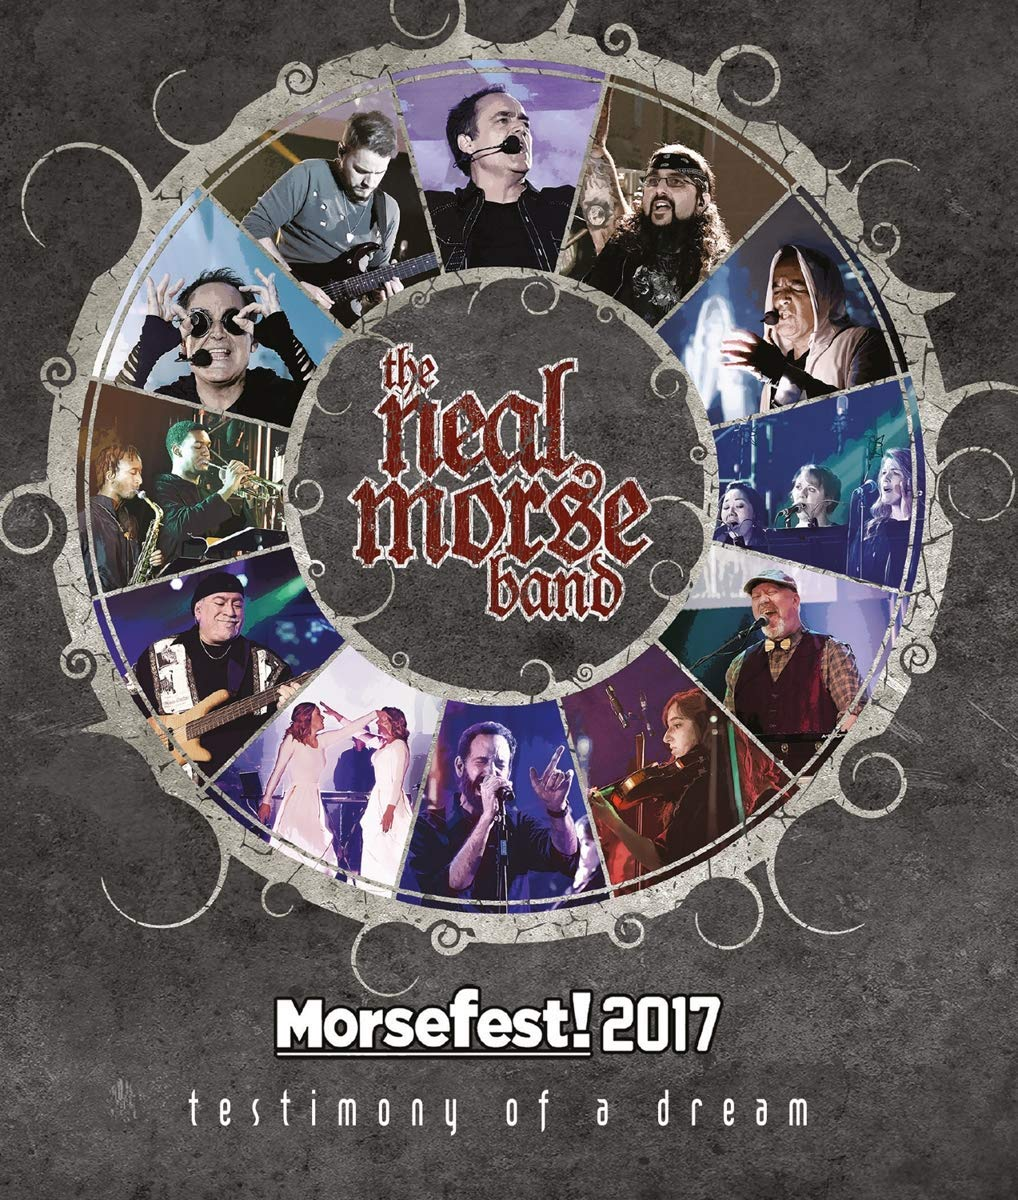 Neal Morse : Morsefest! 2017 : Testimony Of A Dream